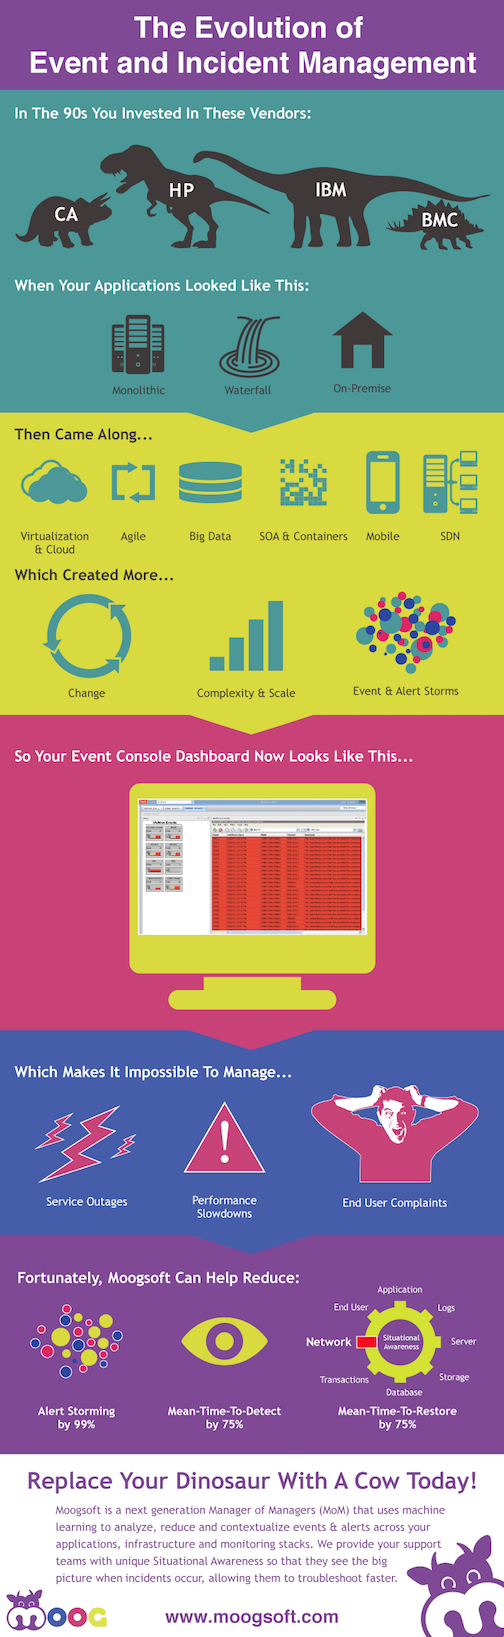 The Evolution of Event Management